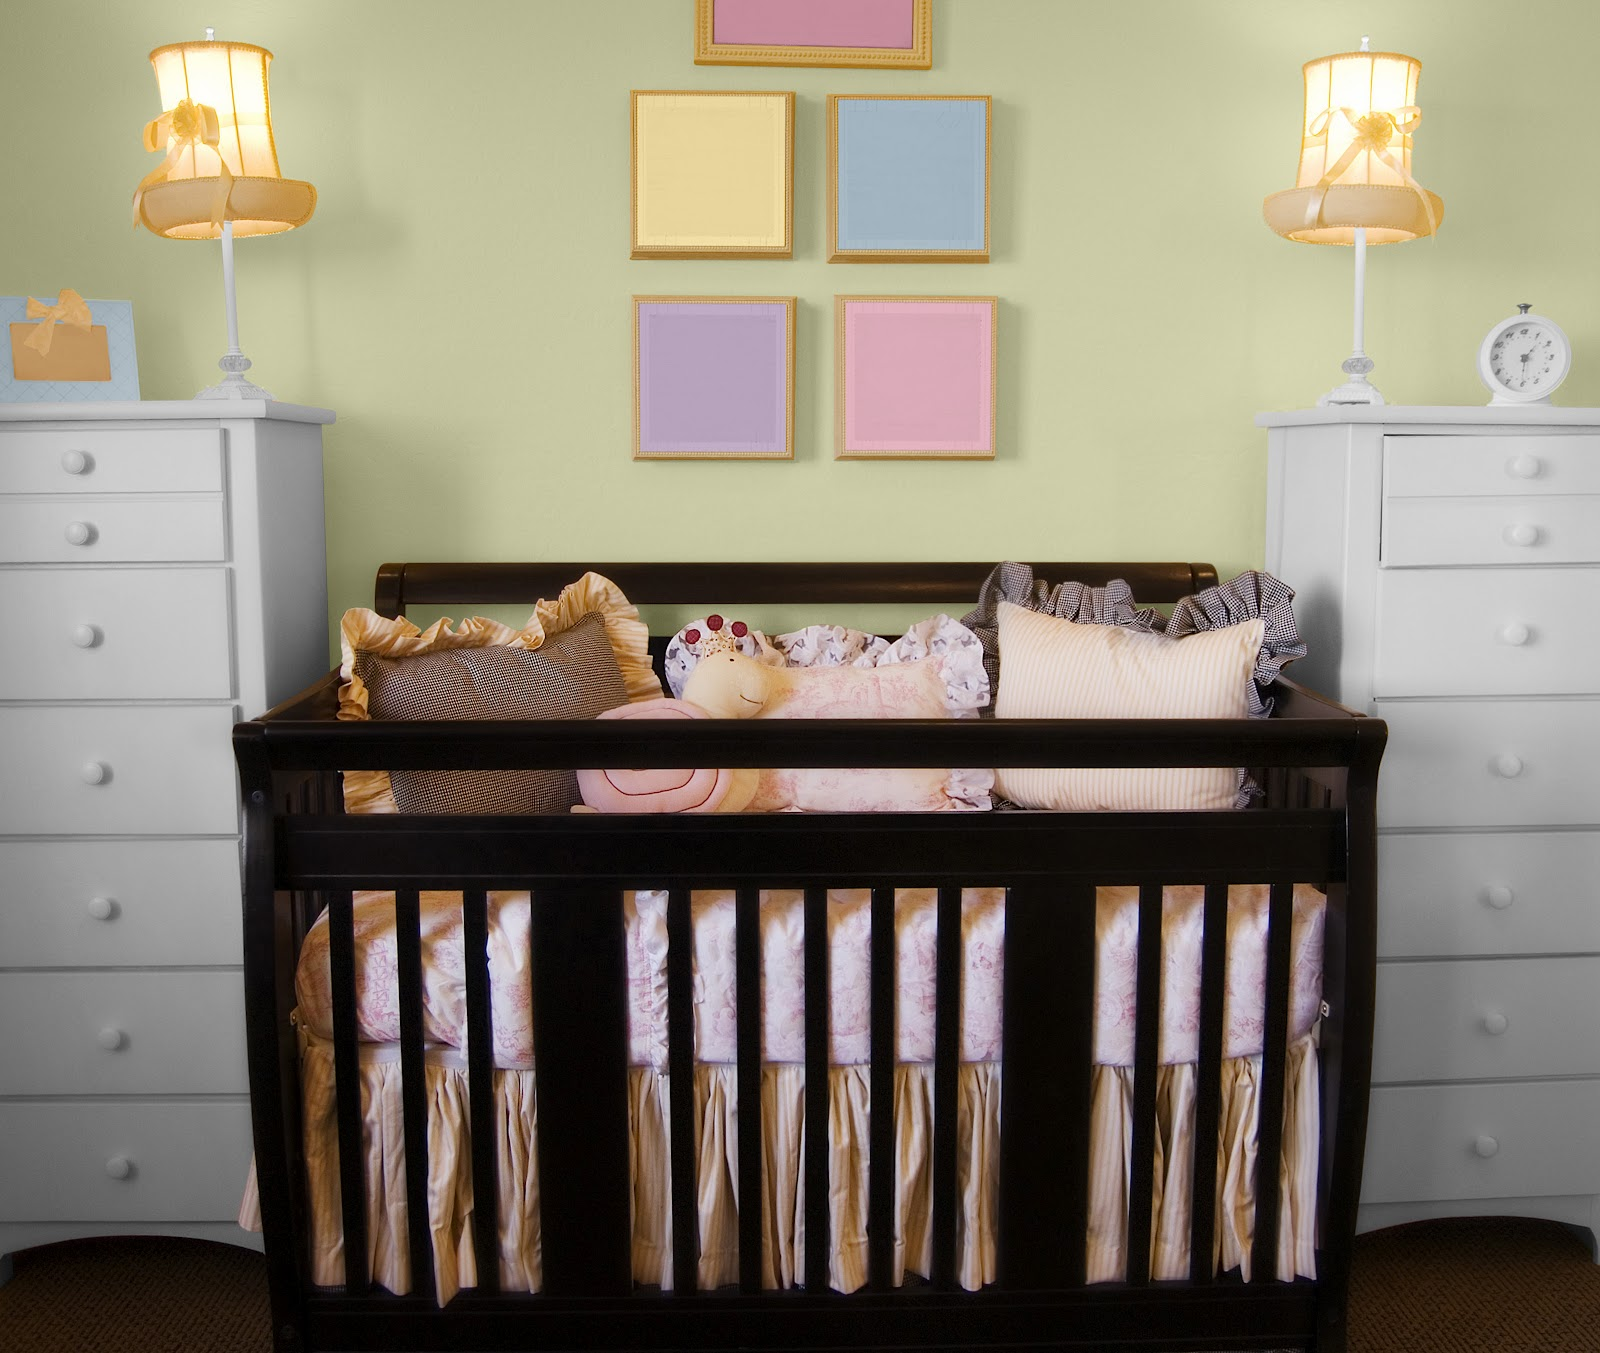 Top 10 baby nursery room colors and decorating ideas for Baby room mural ideas